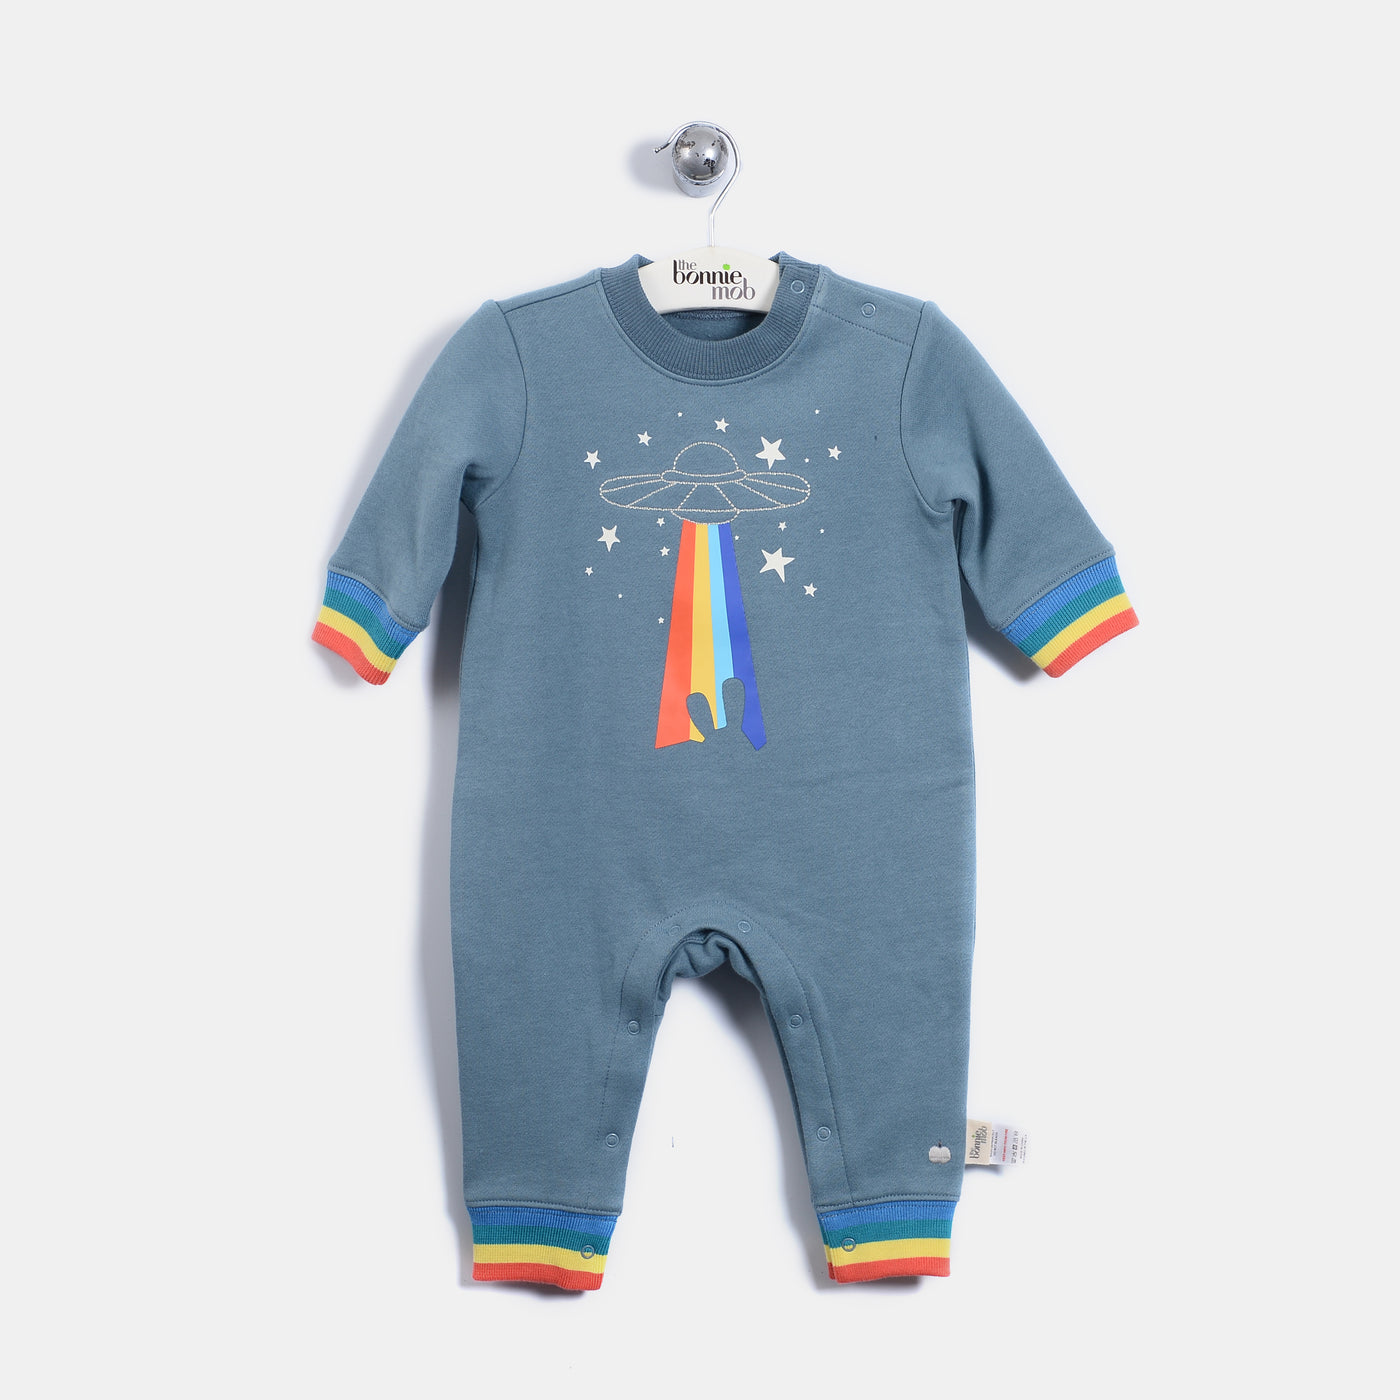 L-QUENTIN - Quilted Rainbow Spaceship Playsuit - Baby Boy - Vintage blue